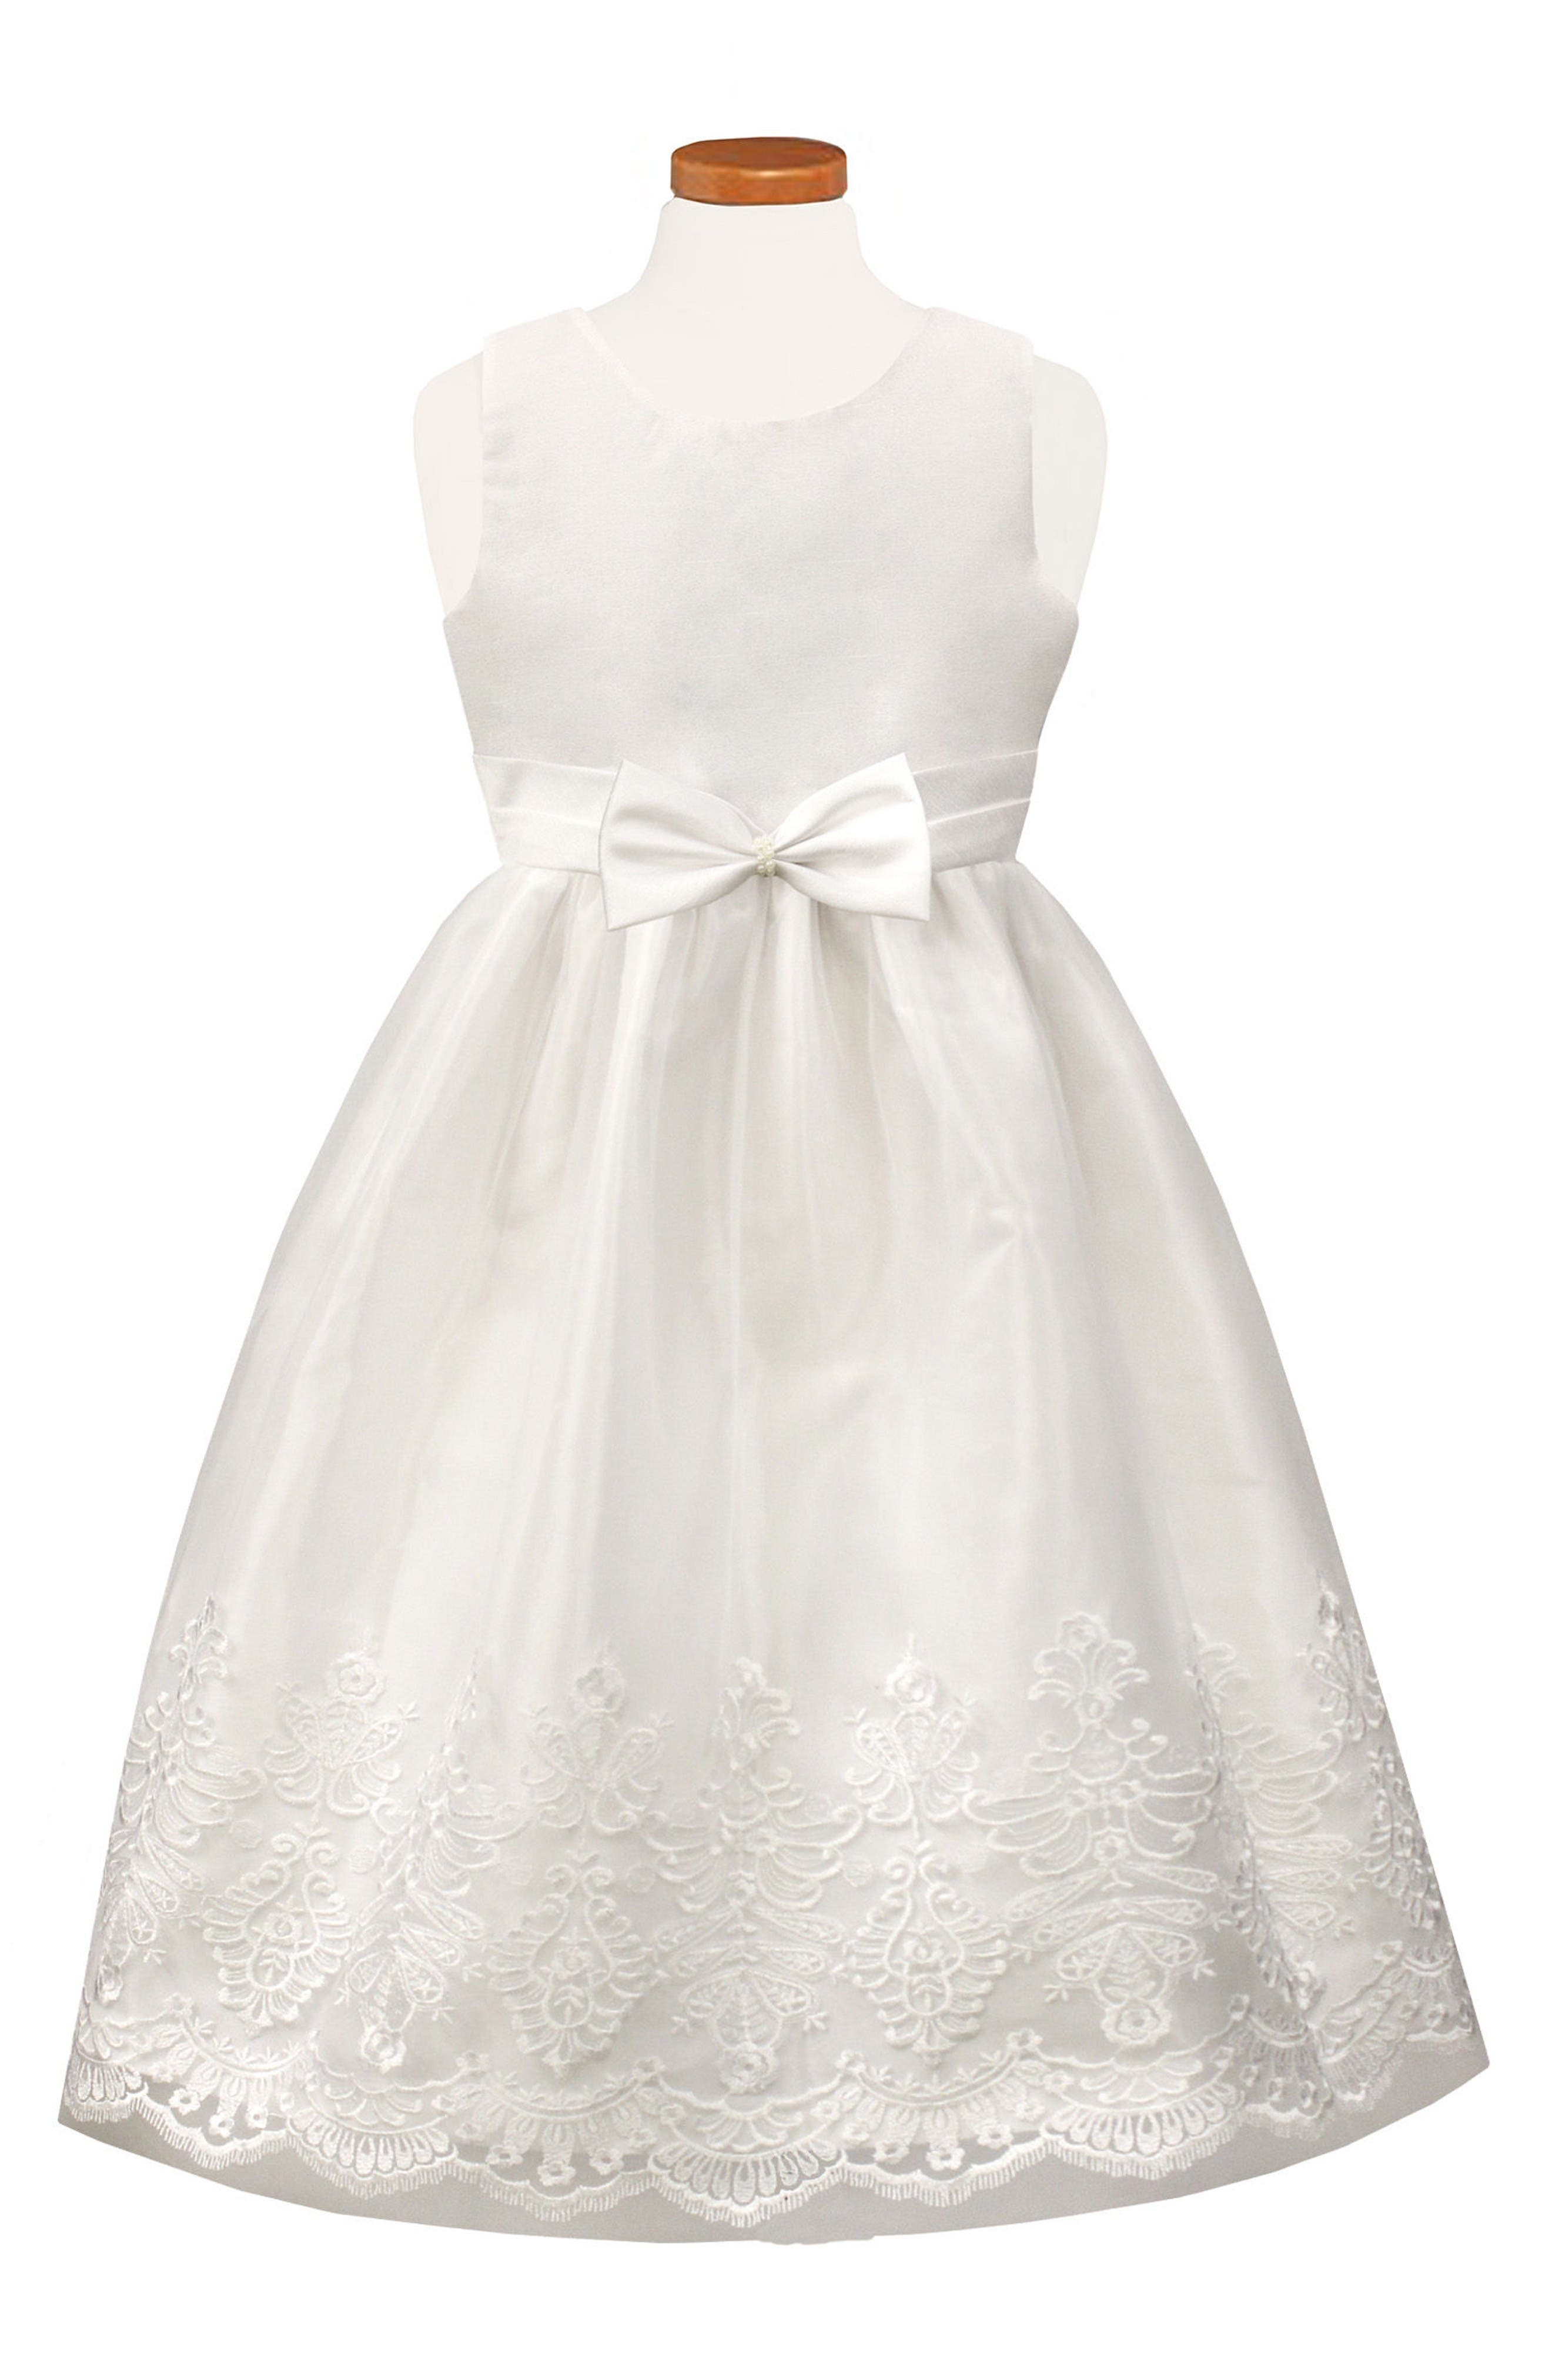 Embroidered Tulle Dress,                             Main thumbnail 1, color,                             White